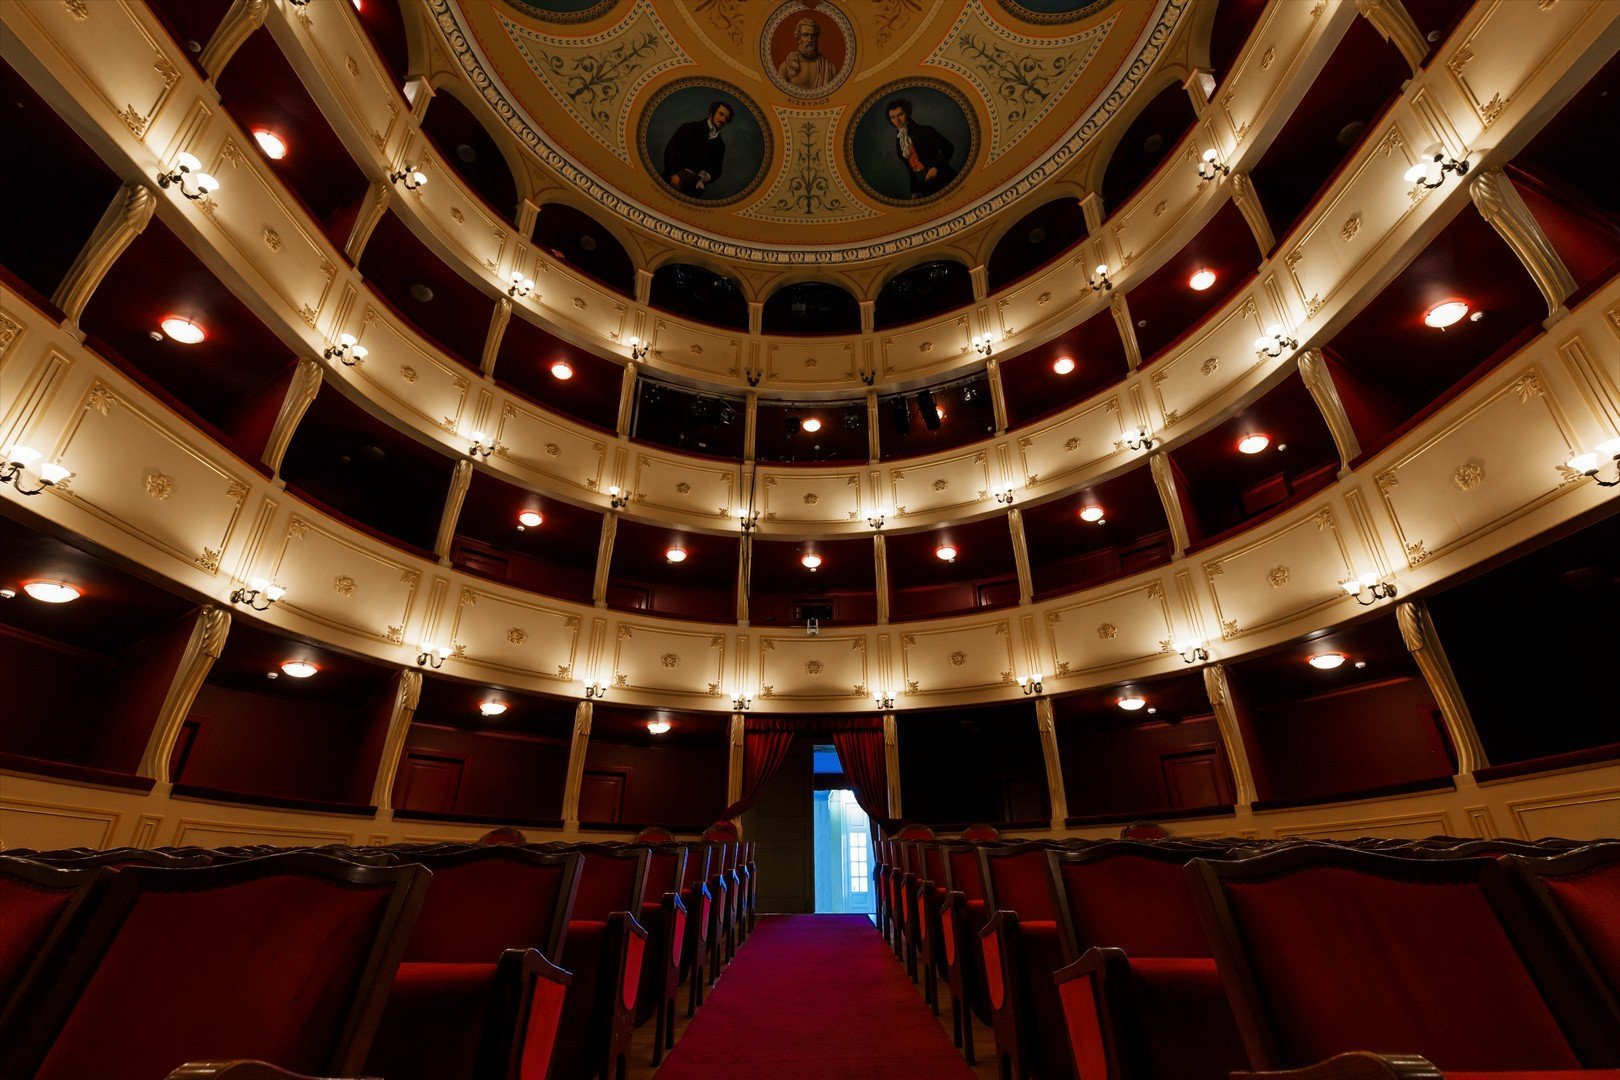 Syros_Interior of Apollo Theater